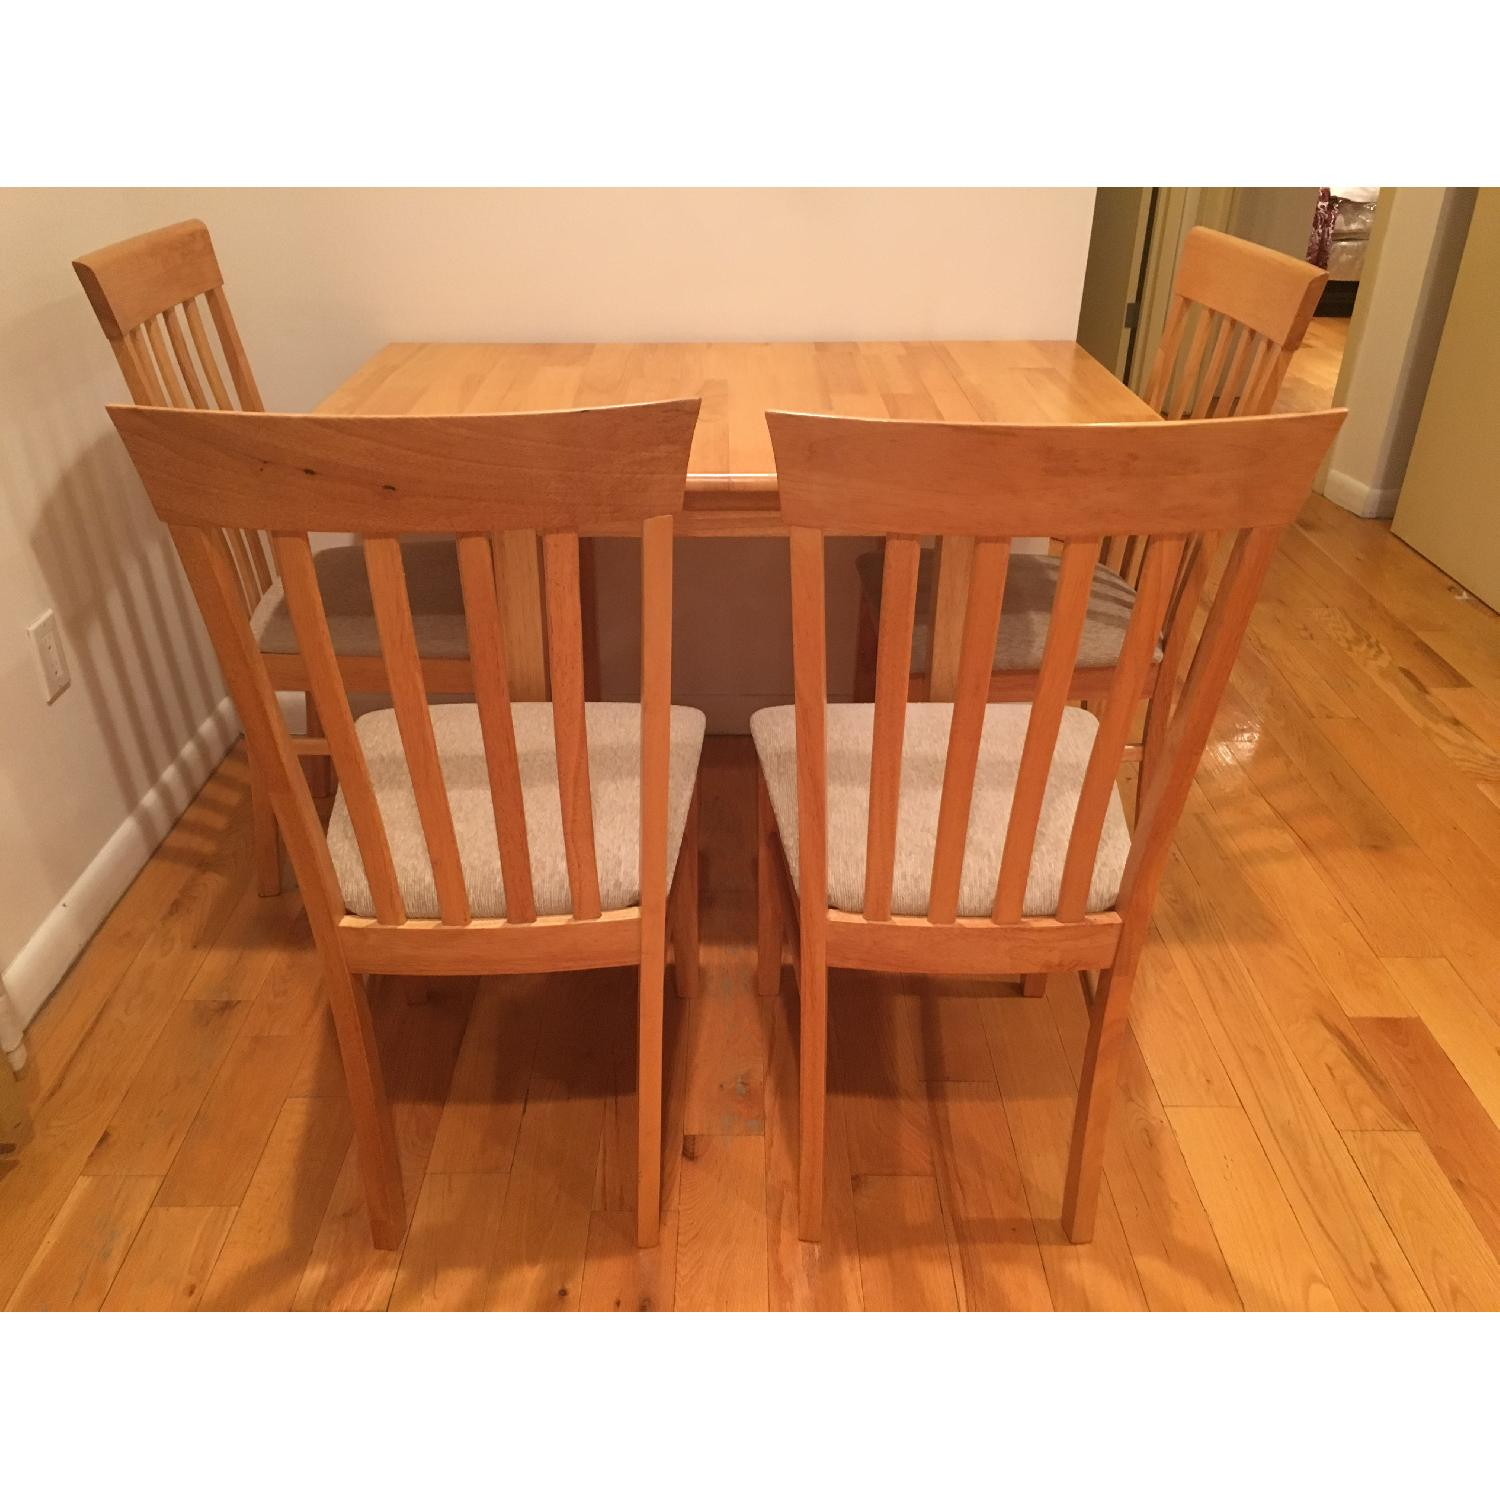 Natural Solid Wood Dining Table w/ 4 Chairs - image-1